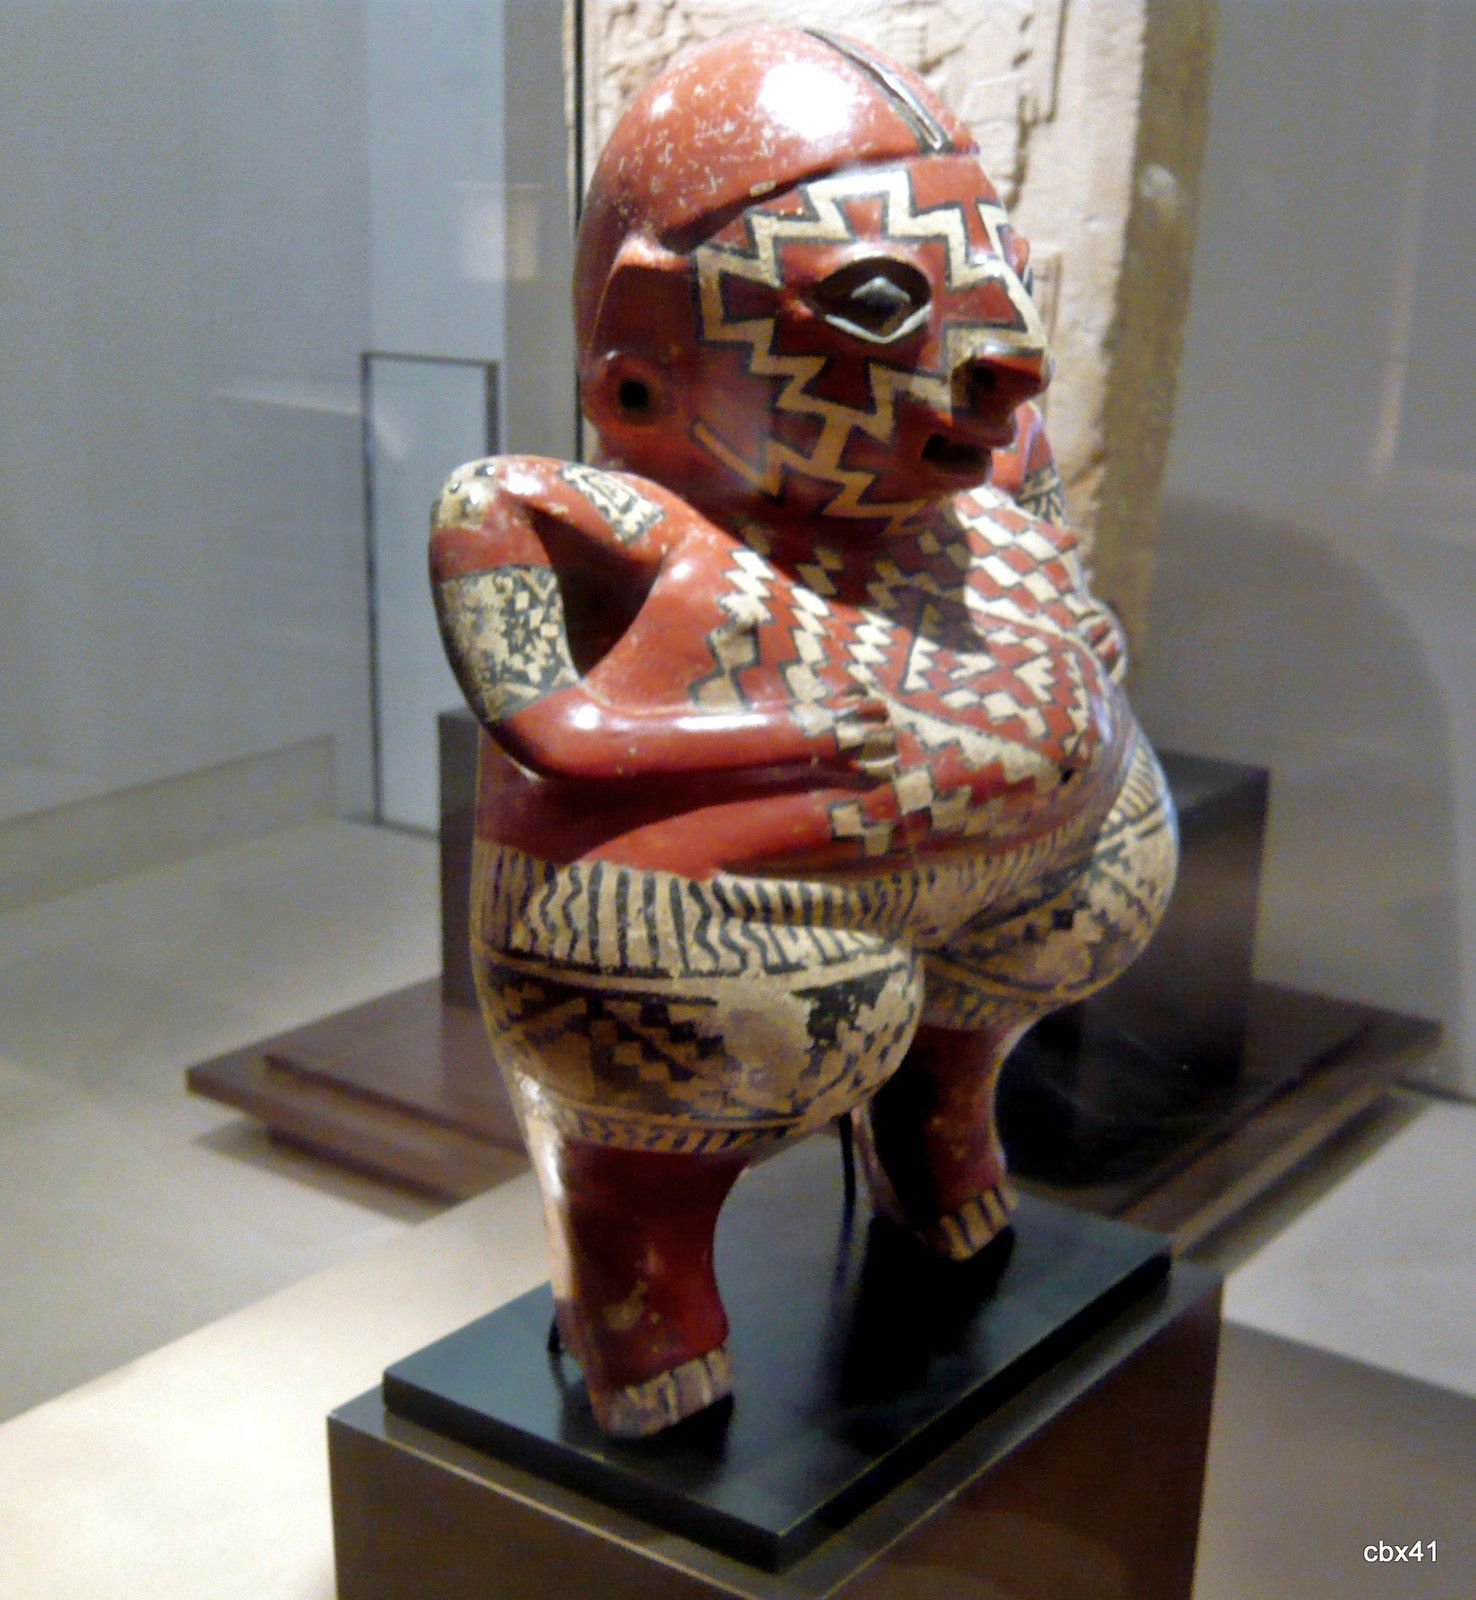 Sculpture de Chupicuaro, Mexique